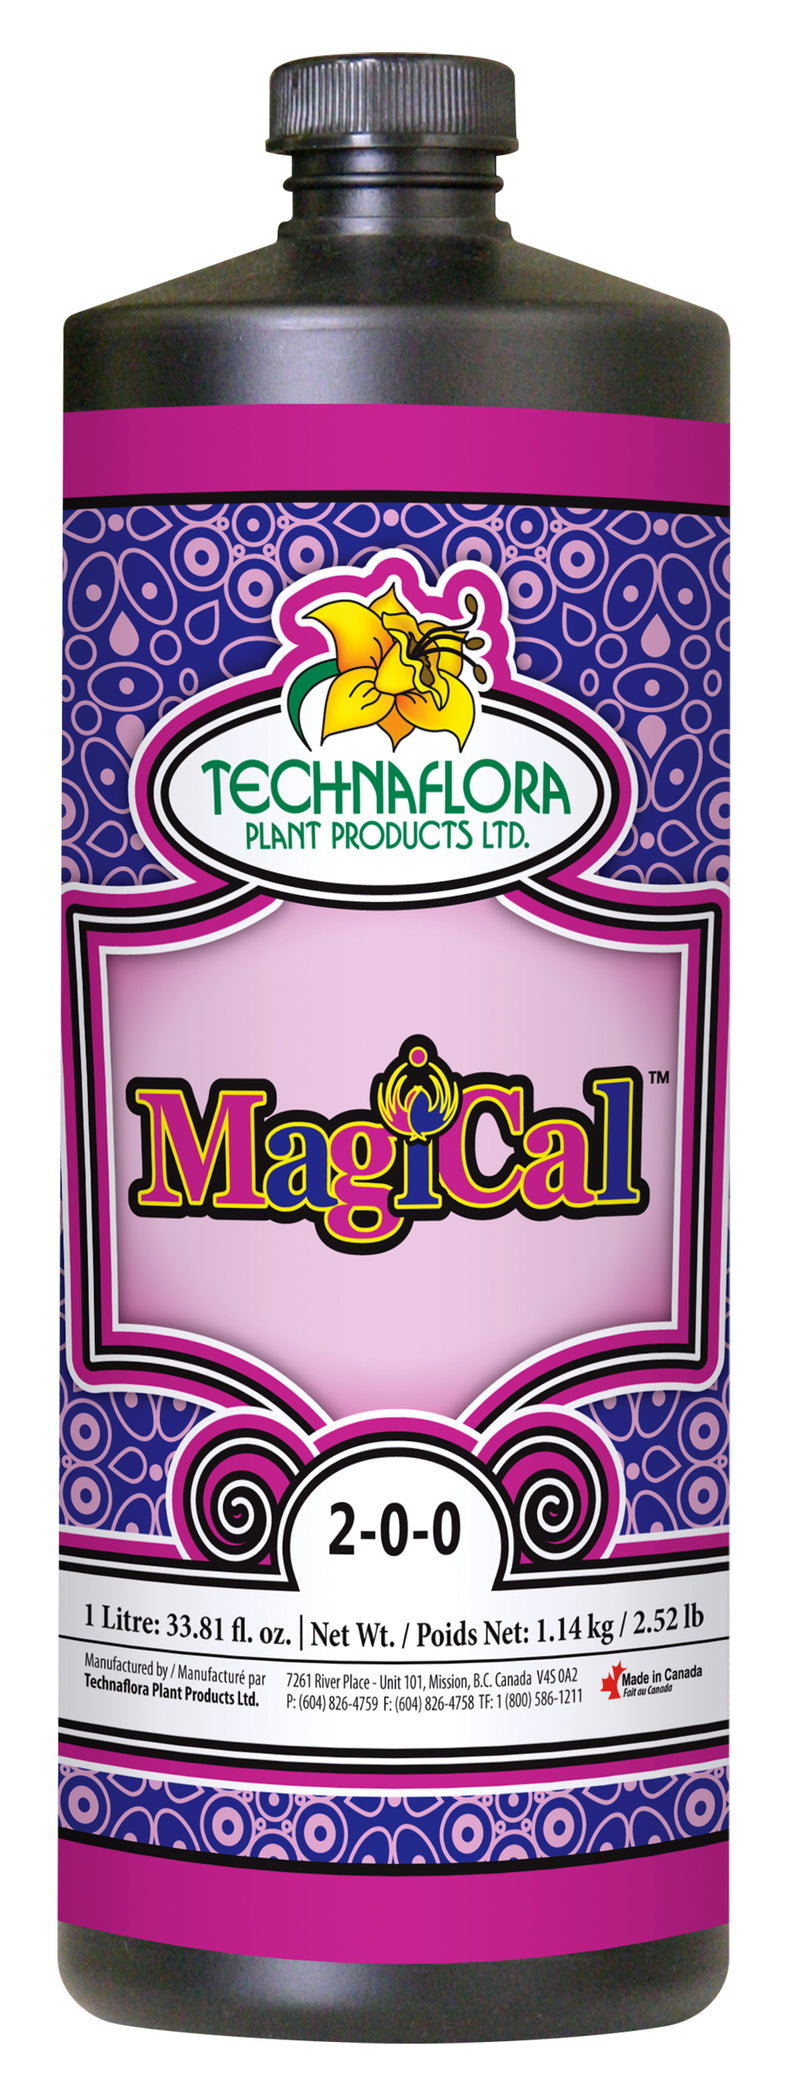 Technaflora® MagiCal™ 2 - 0 - 0